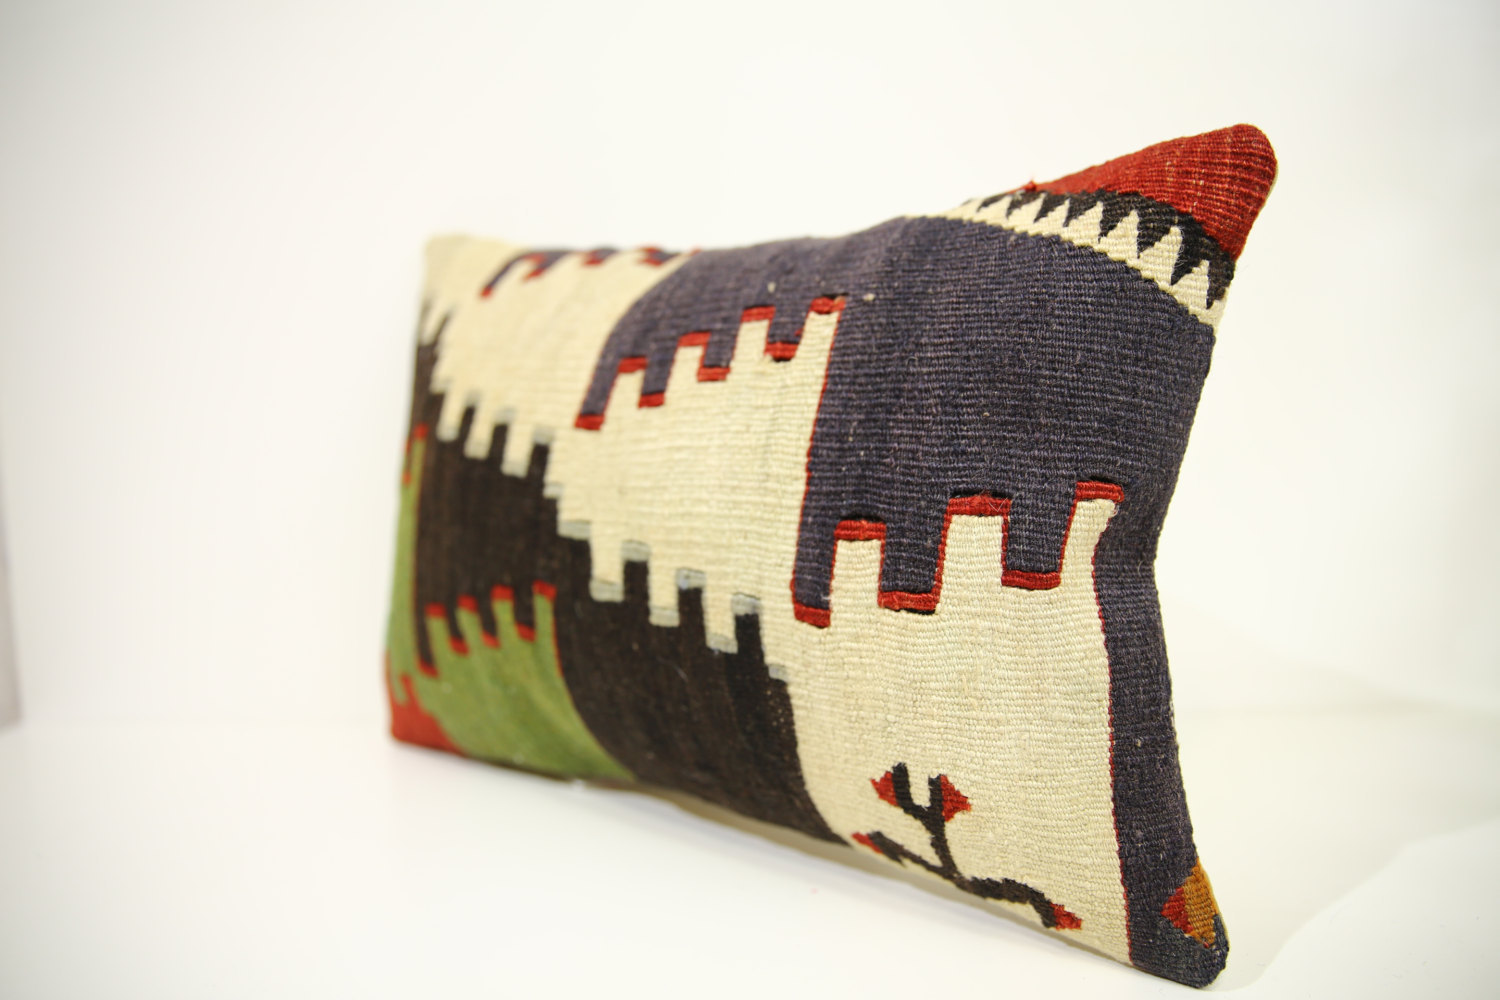 Kilim Pillows | 18x12 | Lumbar pillows | 1440 | Turkish pillows , throw pillows